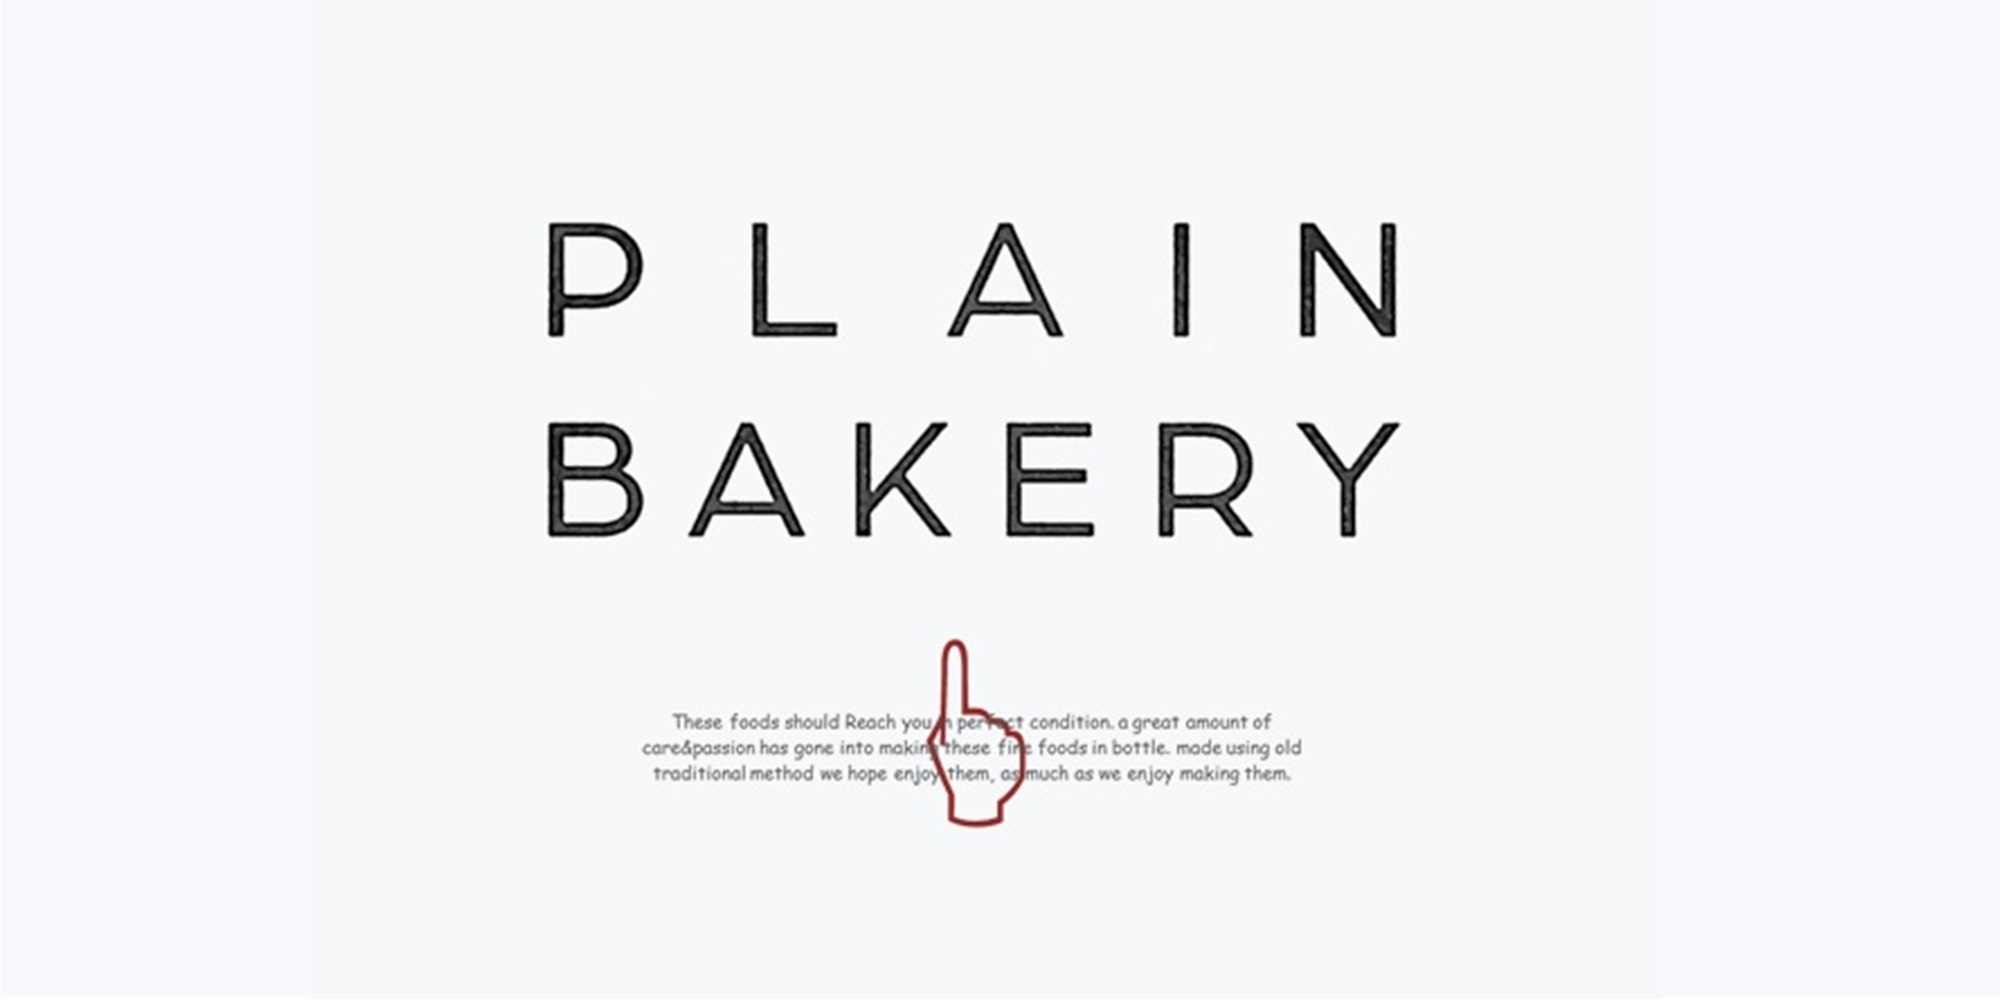 plain bakery